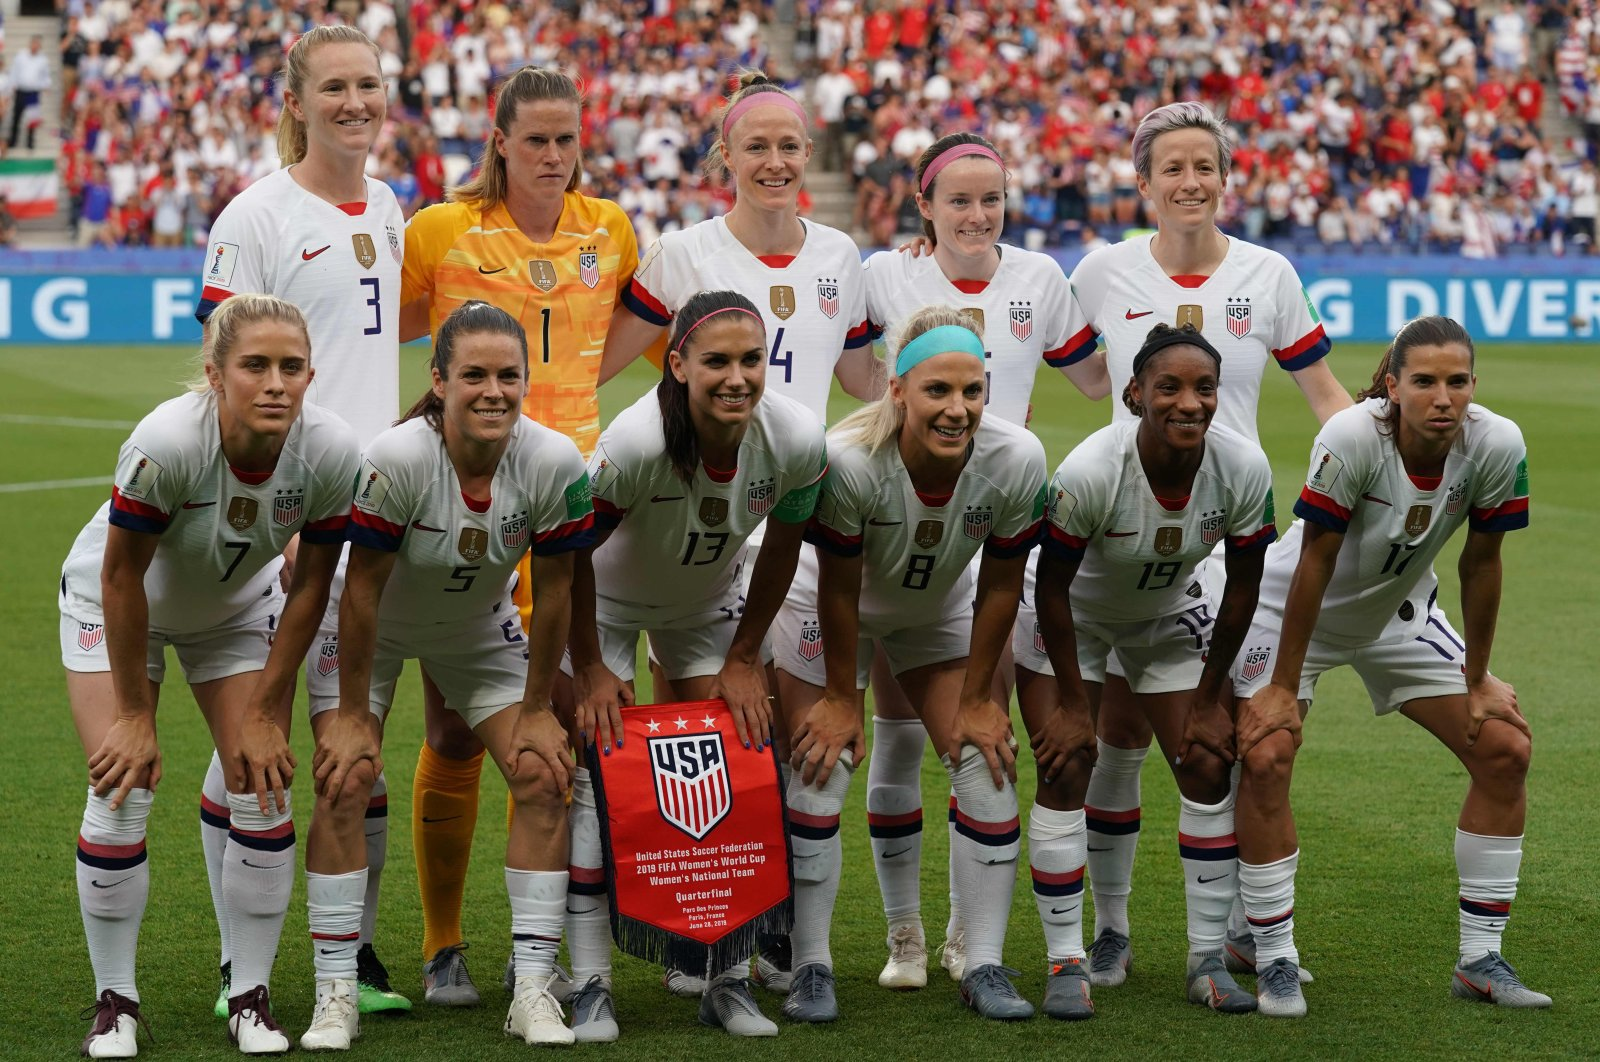 US women's national football team poses ahead of the 2019 Women's World Cup quarterfinal football match between France and U.S., at the Parc des Princes stadium in Paris, June 28, 2019. (AFP Photo)